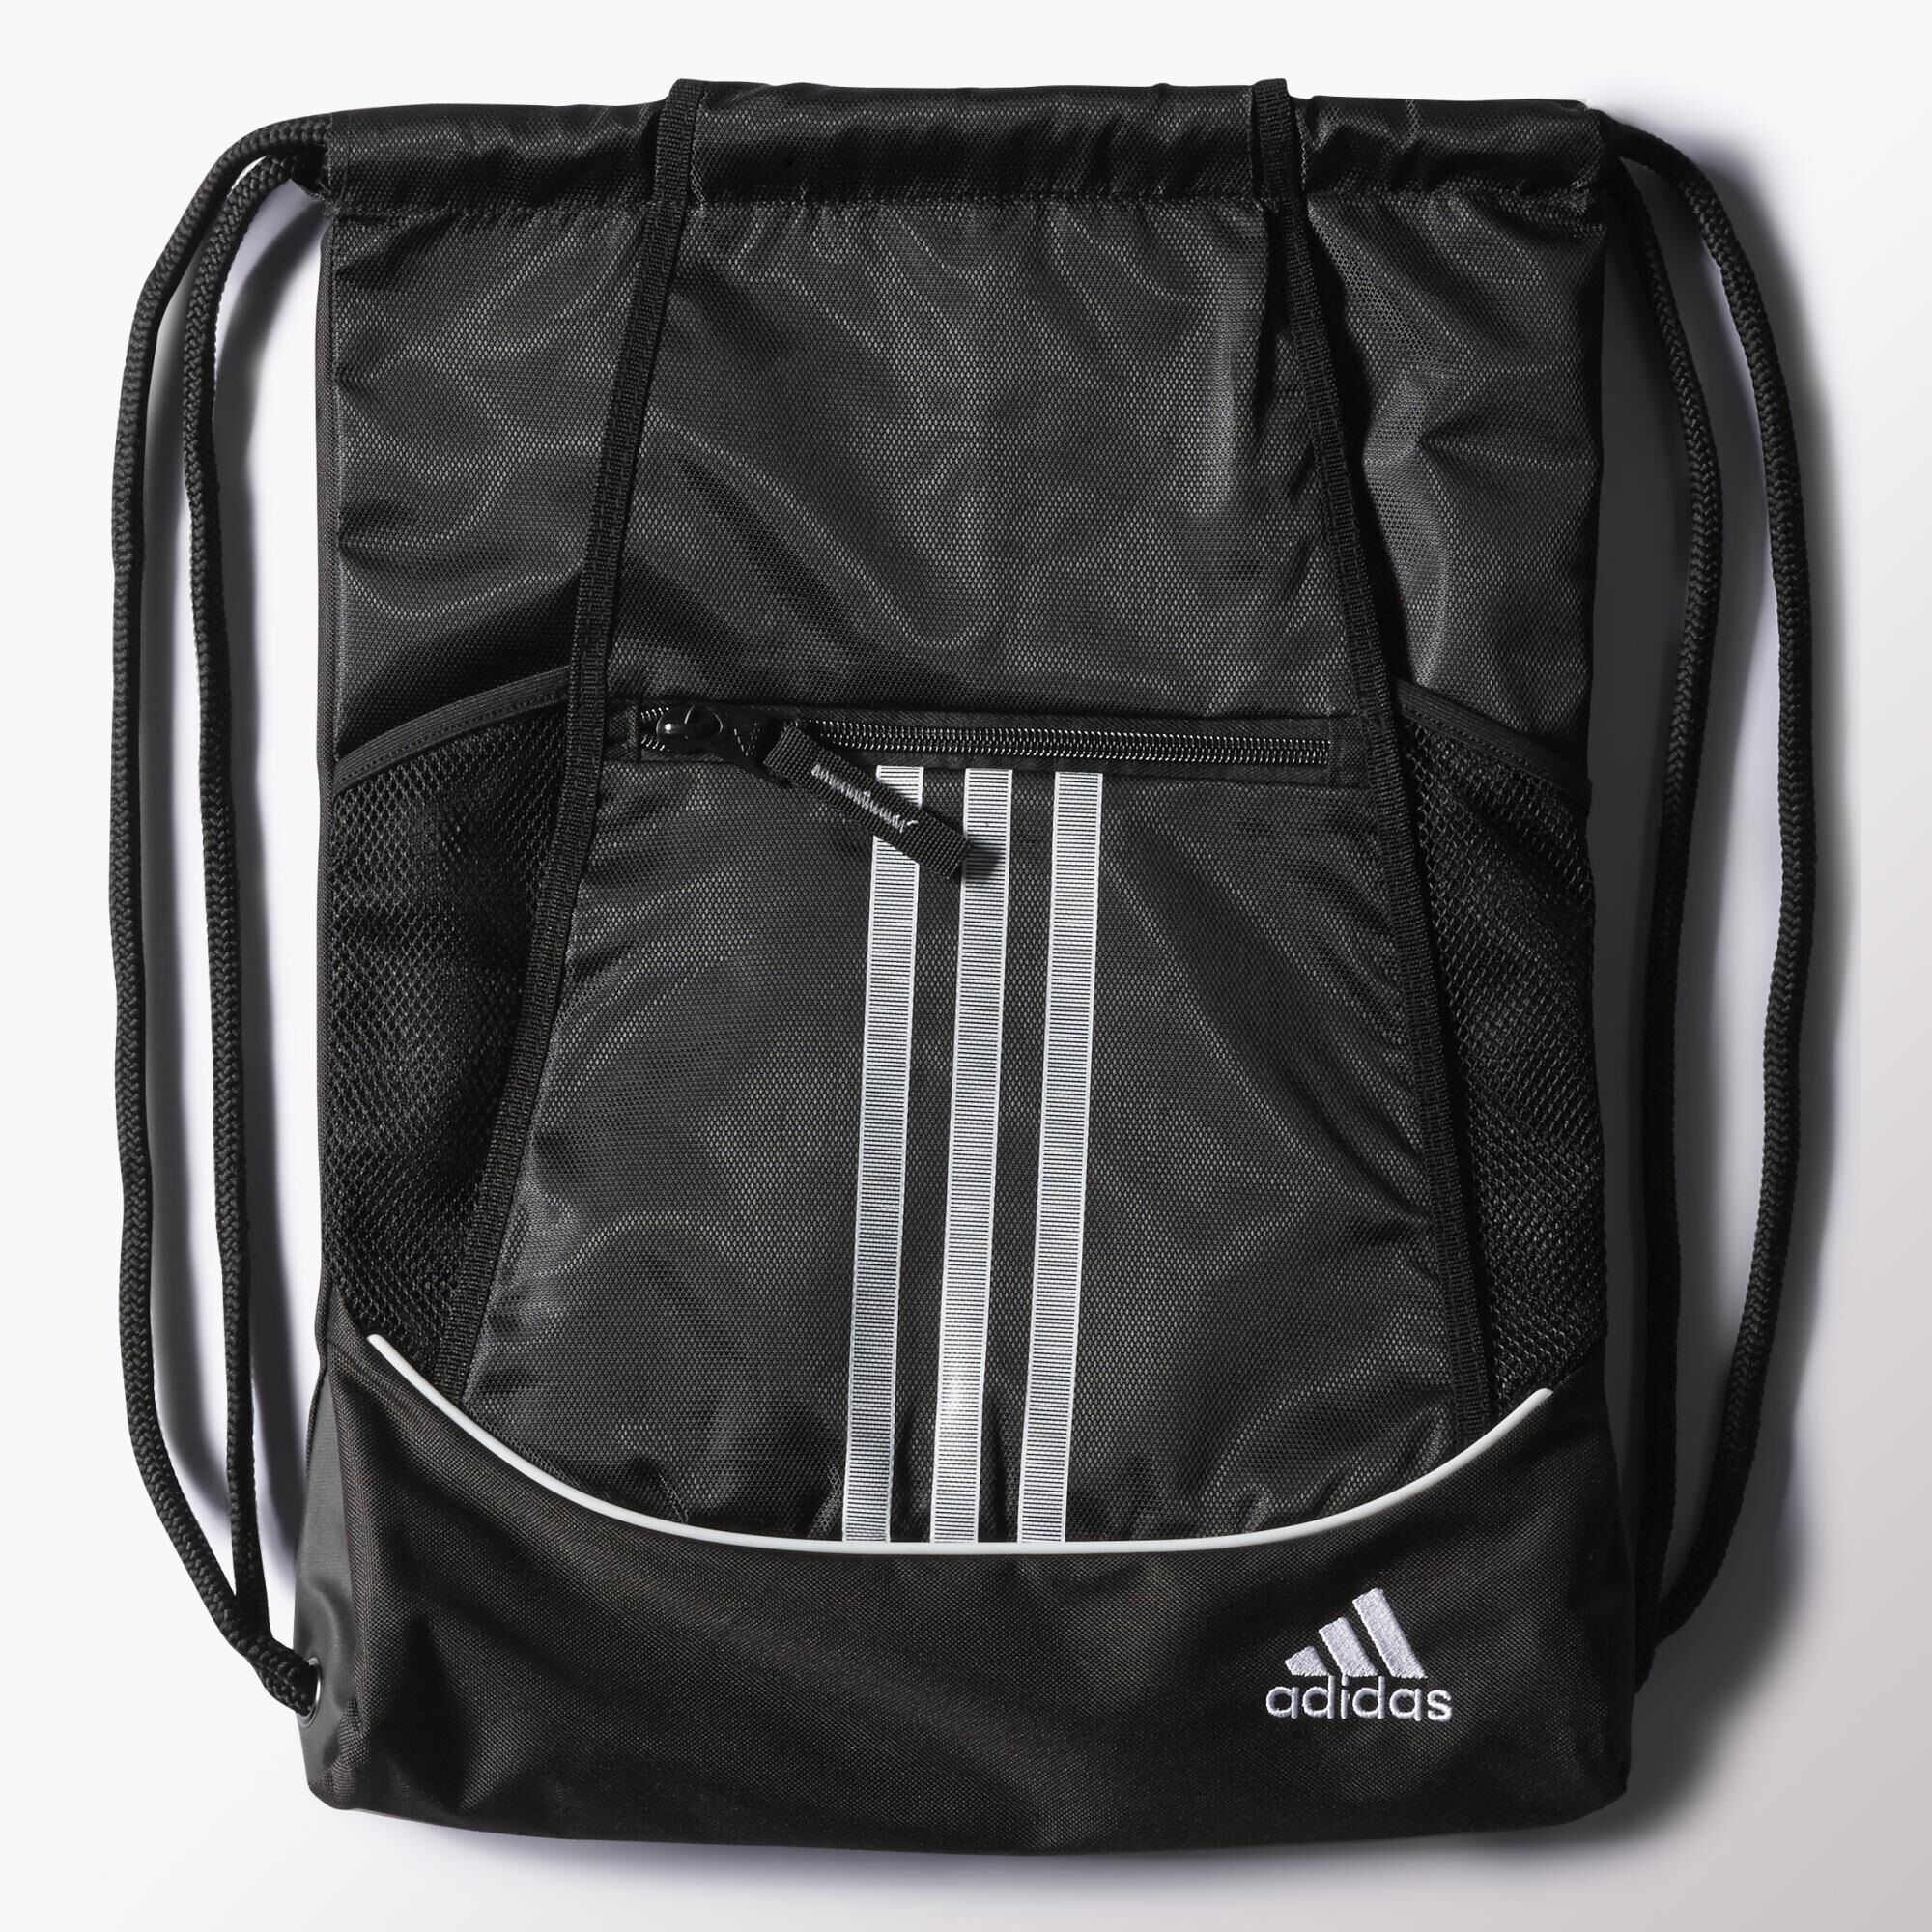 Buy adidas sackpack gold   OFF58% Discounted ce2048c636